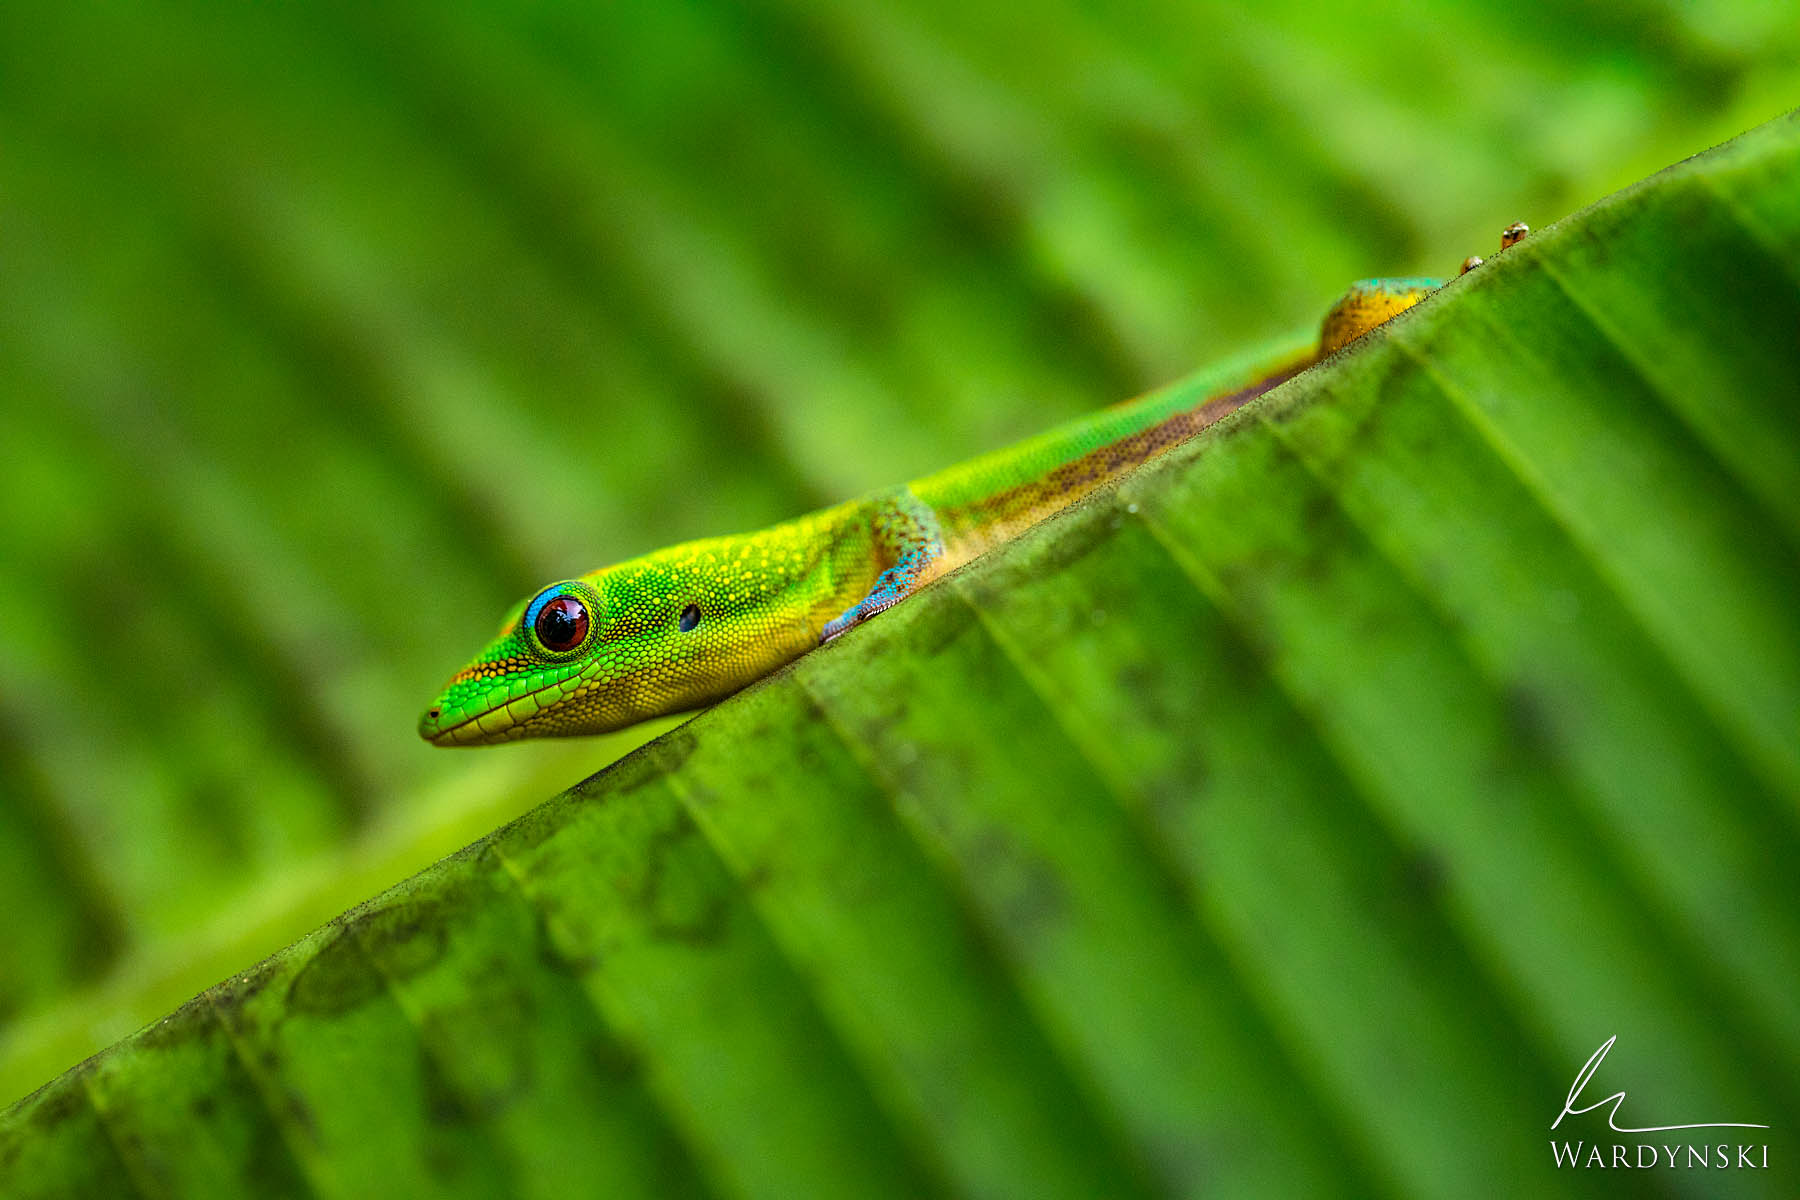 Fine Art Print | Limited Edition of 35  A gold dust day gecko sits on a broad green leaf on the island of Hawaii. These Geckos...